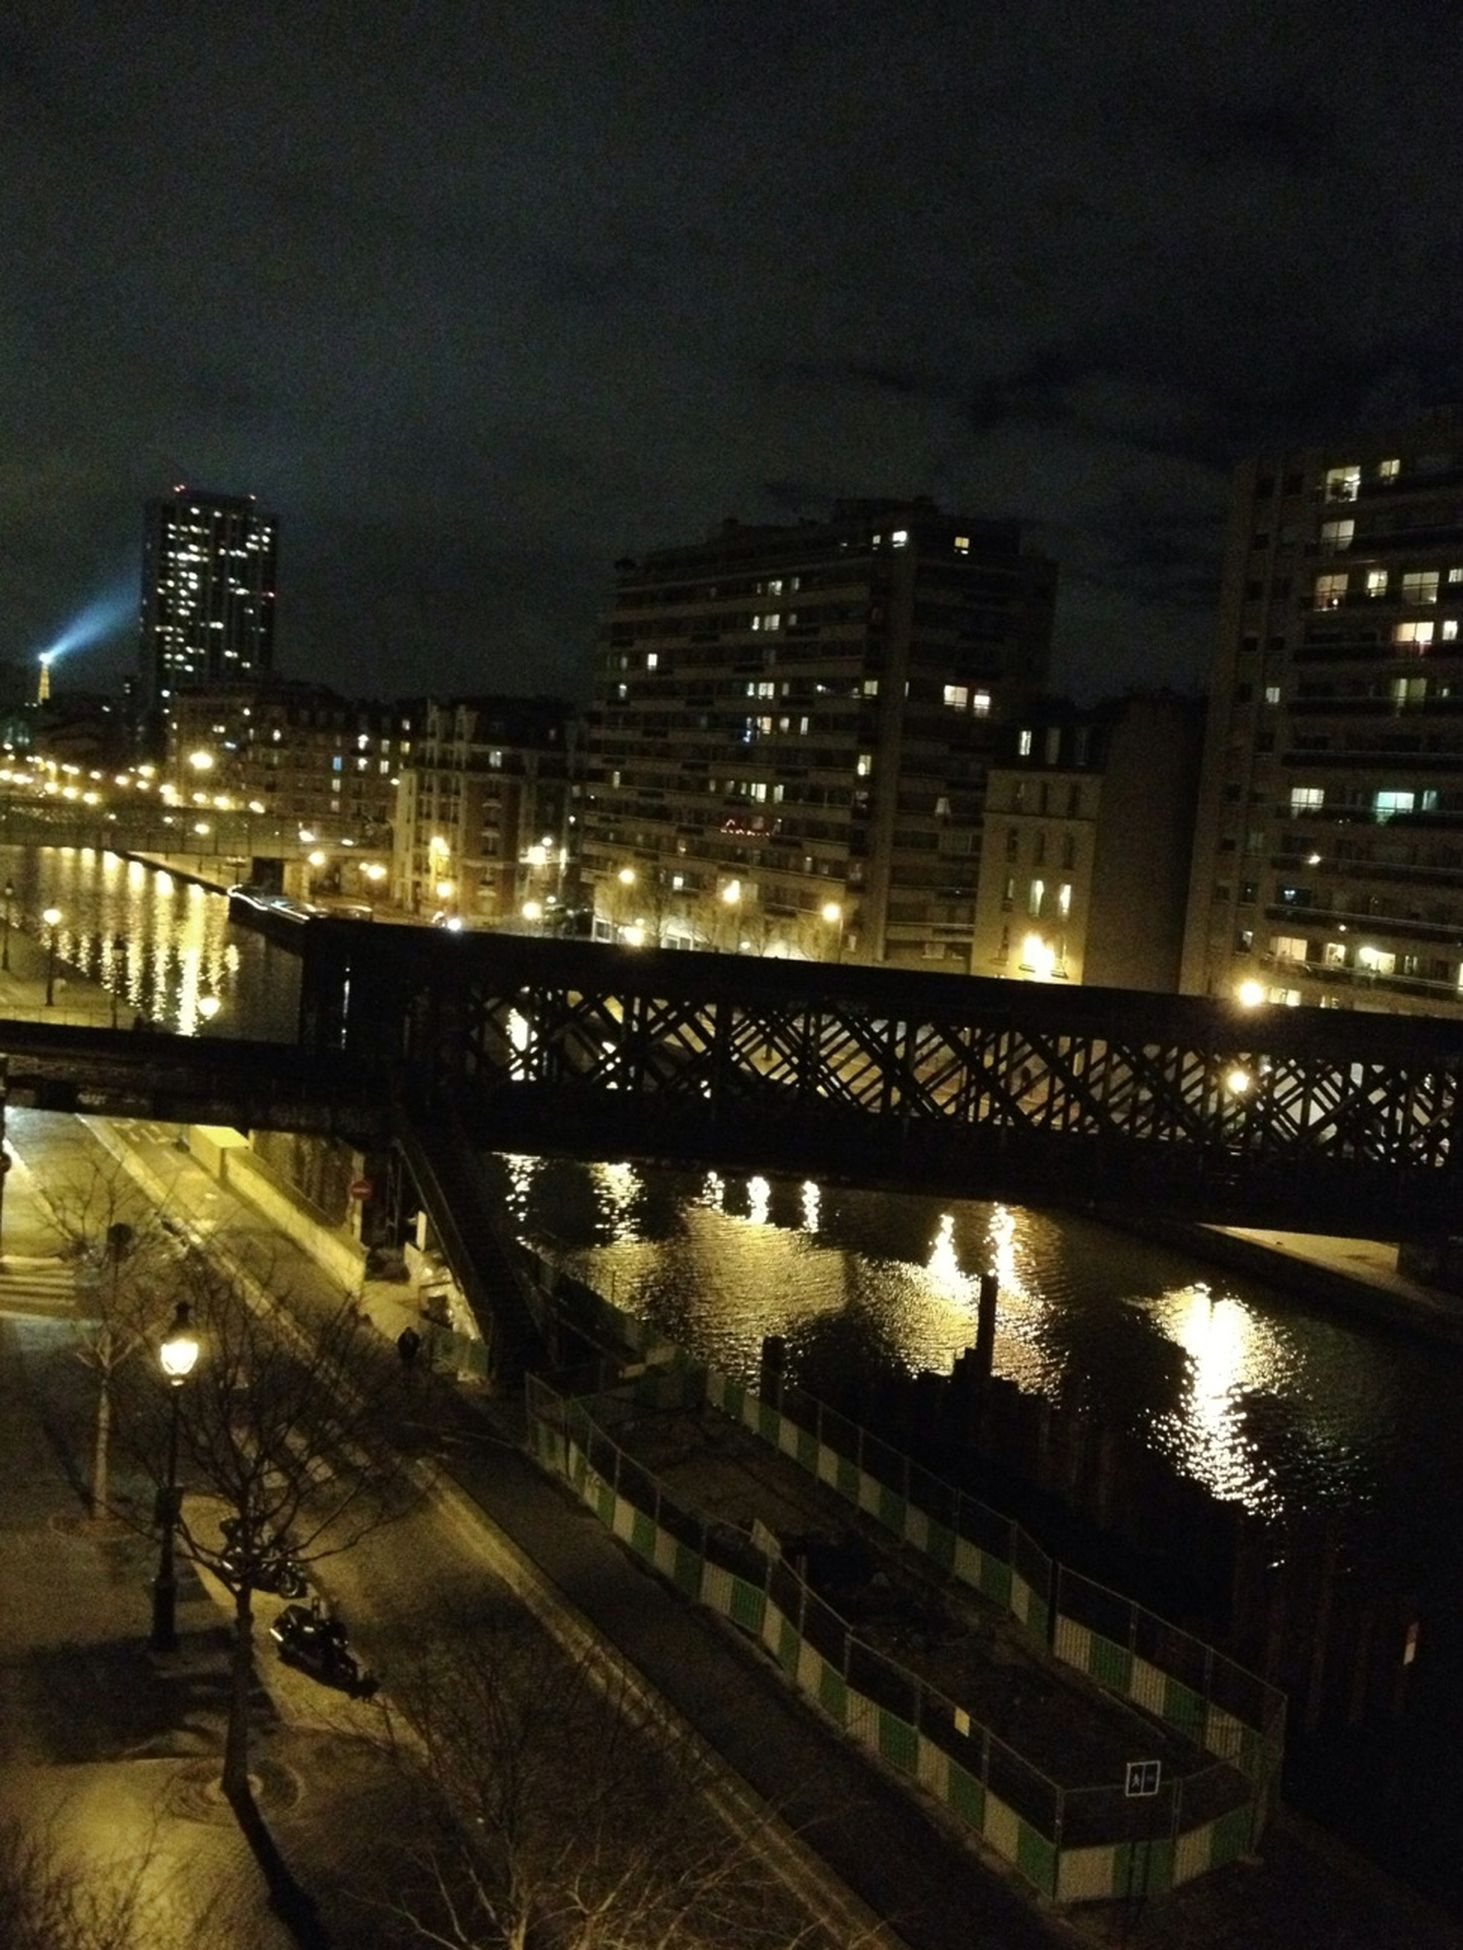 bridge, architecture, connection, built structure, bridge - man made structure, engineering, river, city, modern, railing, capital cities, building exterior, illuminated, cityscape, night, engineering, connection, modern, city life, development